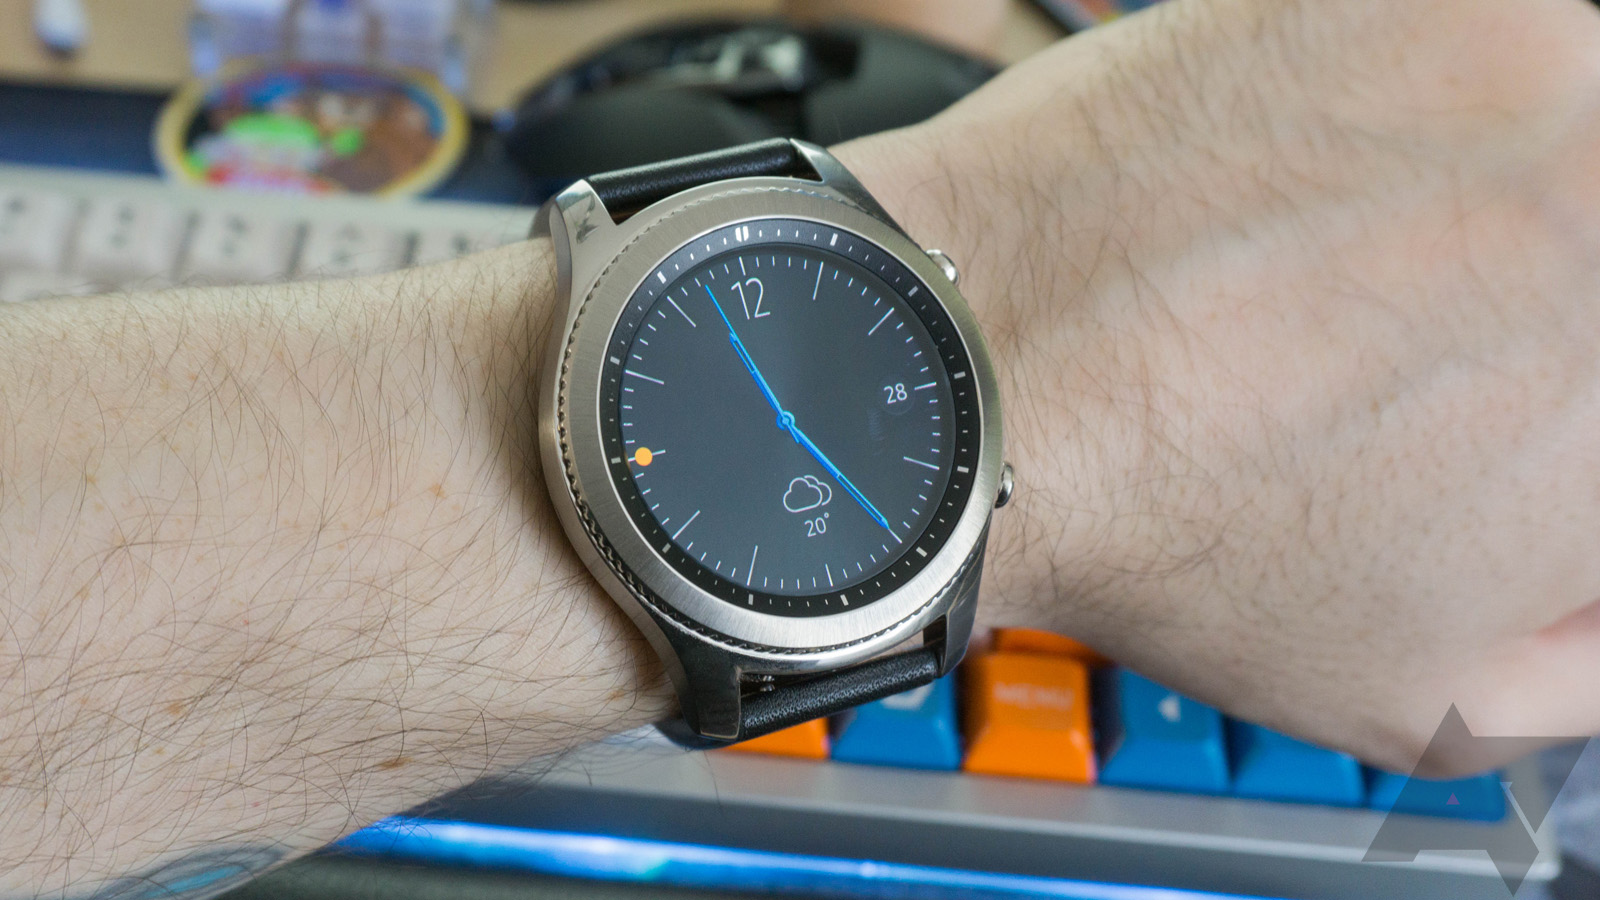 [Update: It's back] Samsung's Gear S3 Frontier is now $200, its lowest price yet